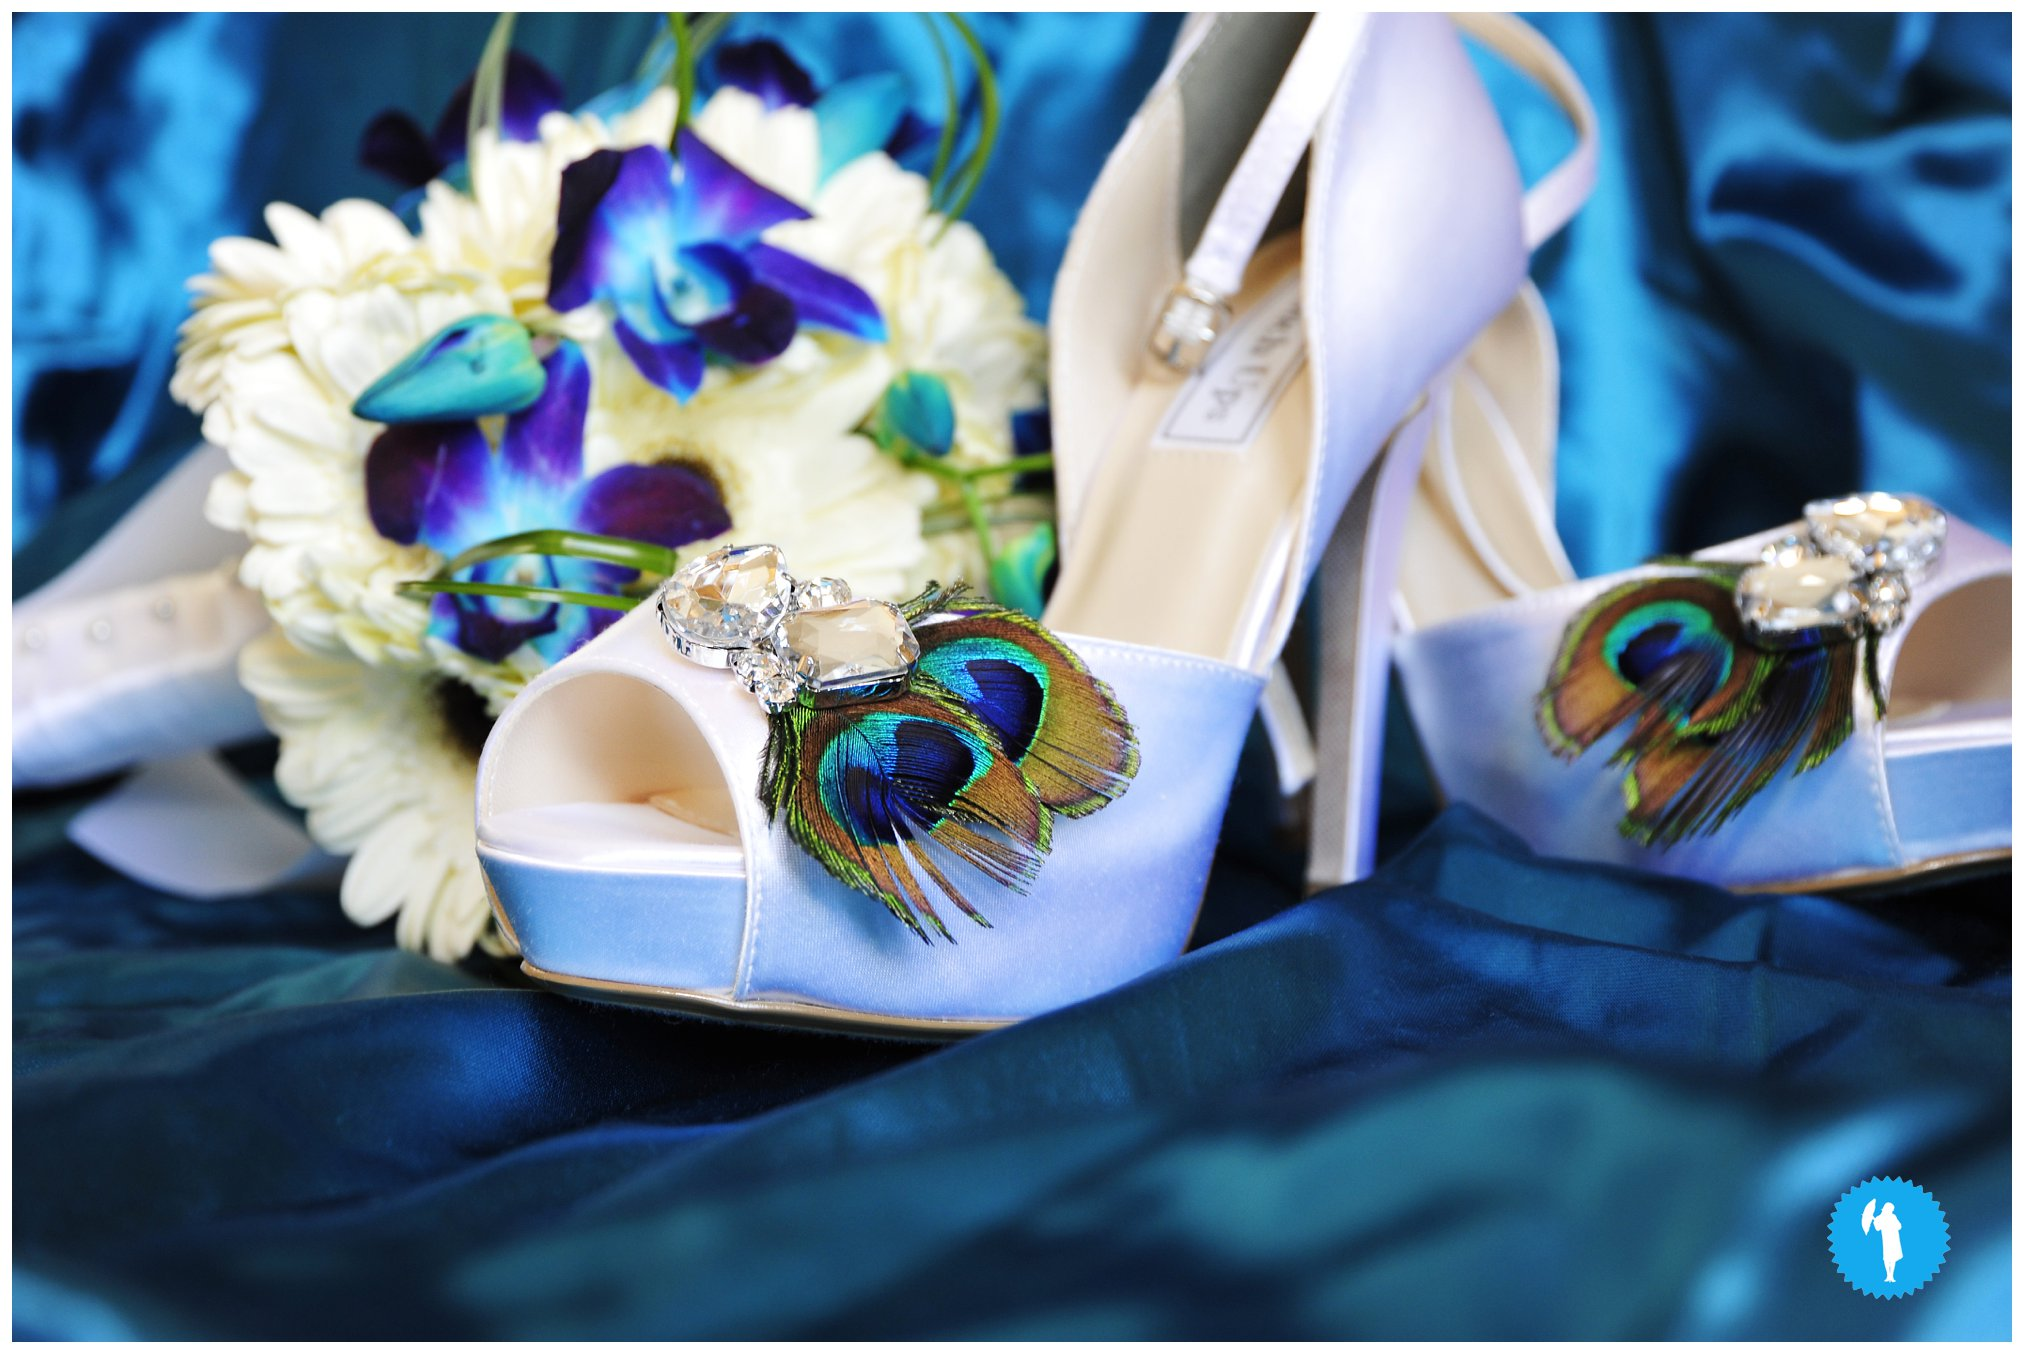 Wedding blue shoes. Peacock feather accessories.